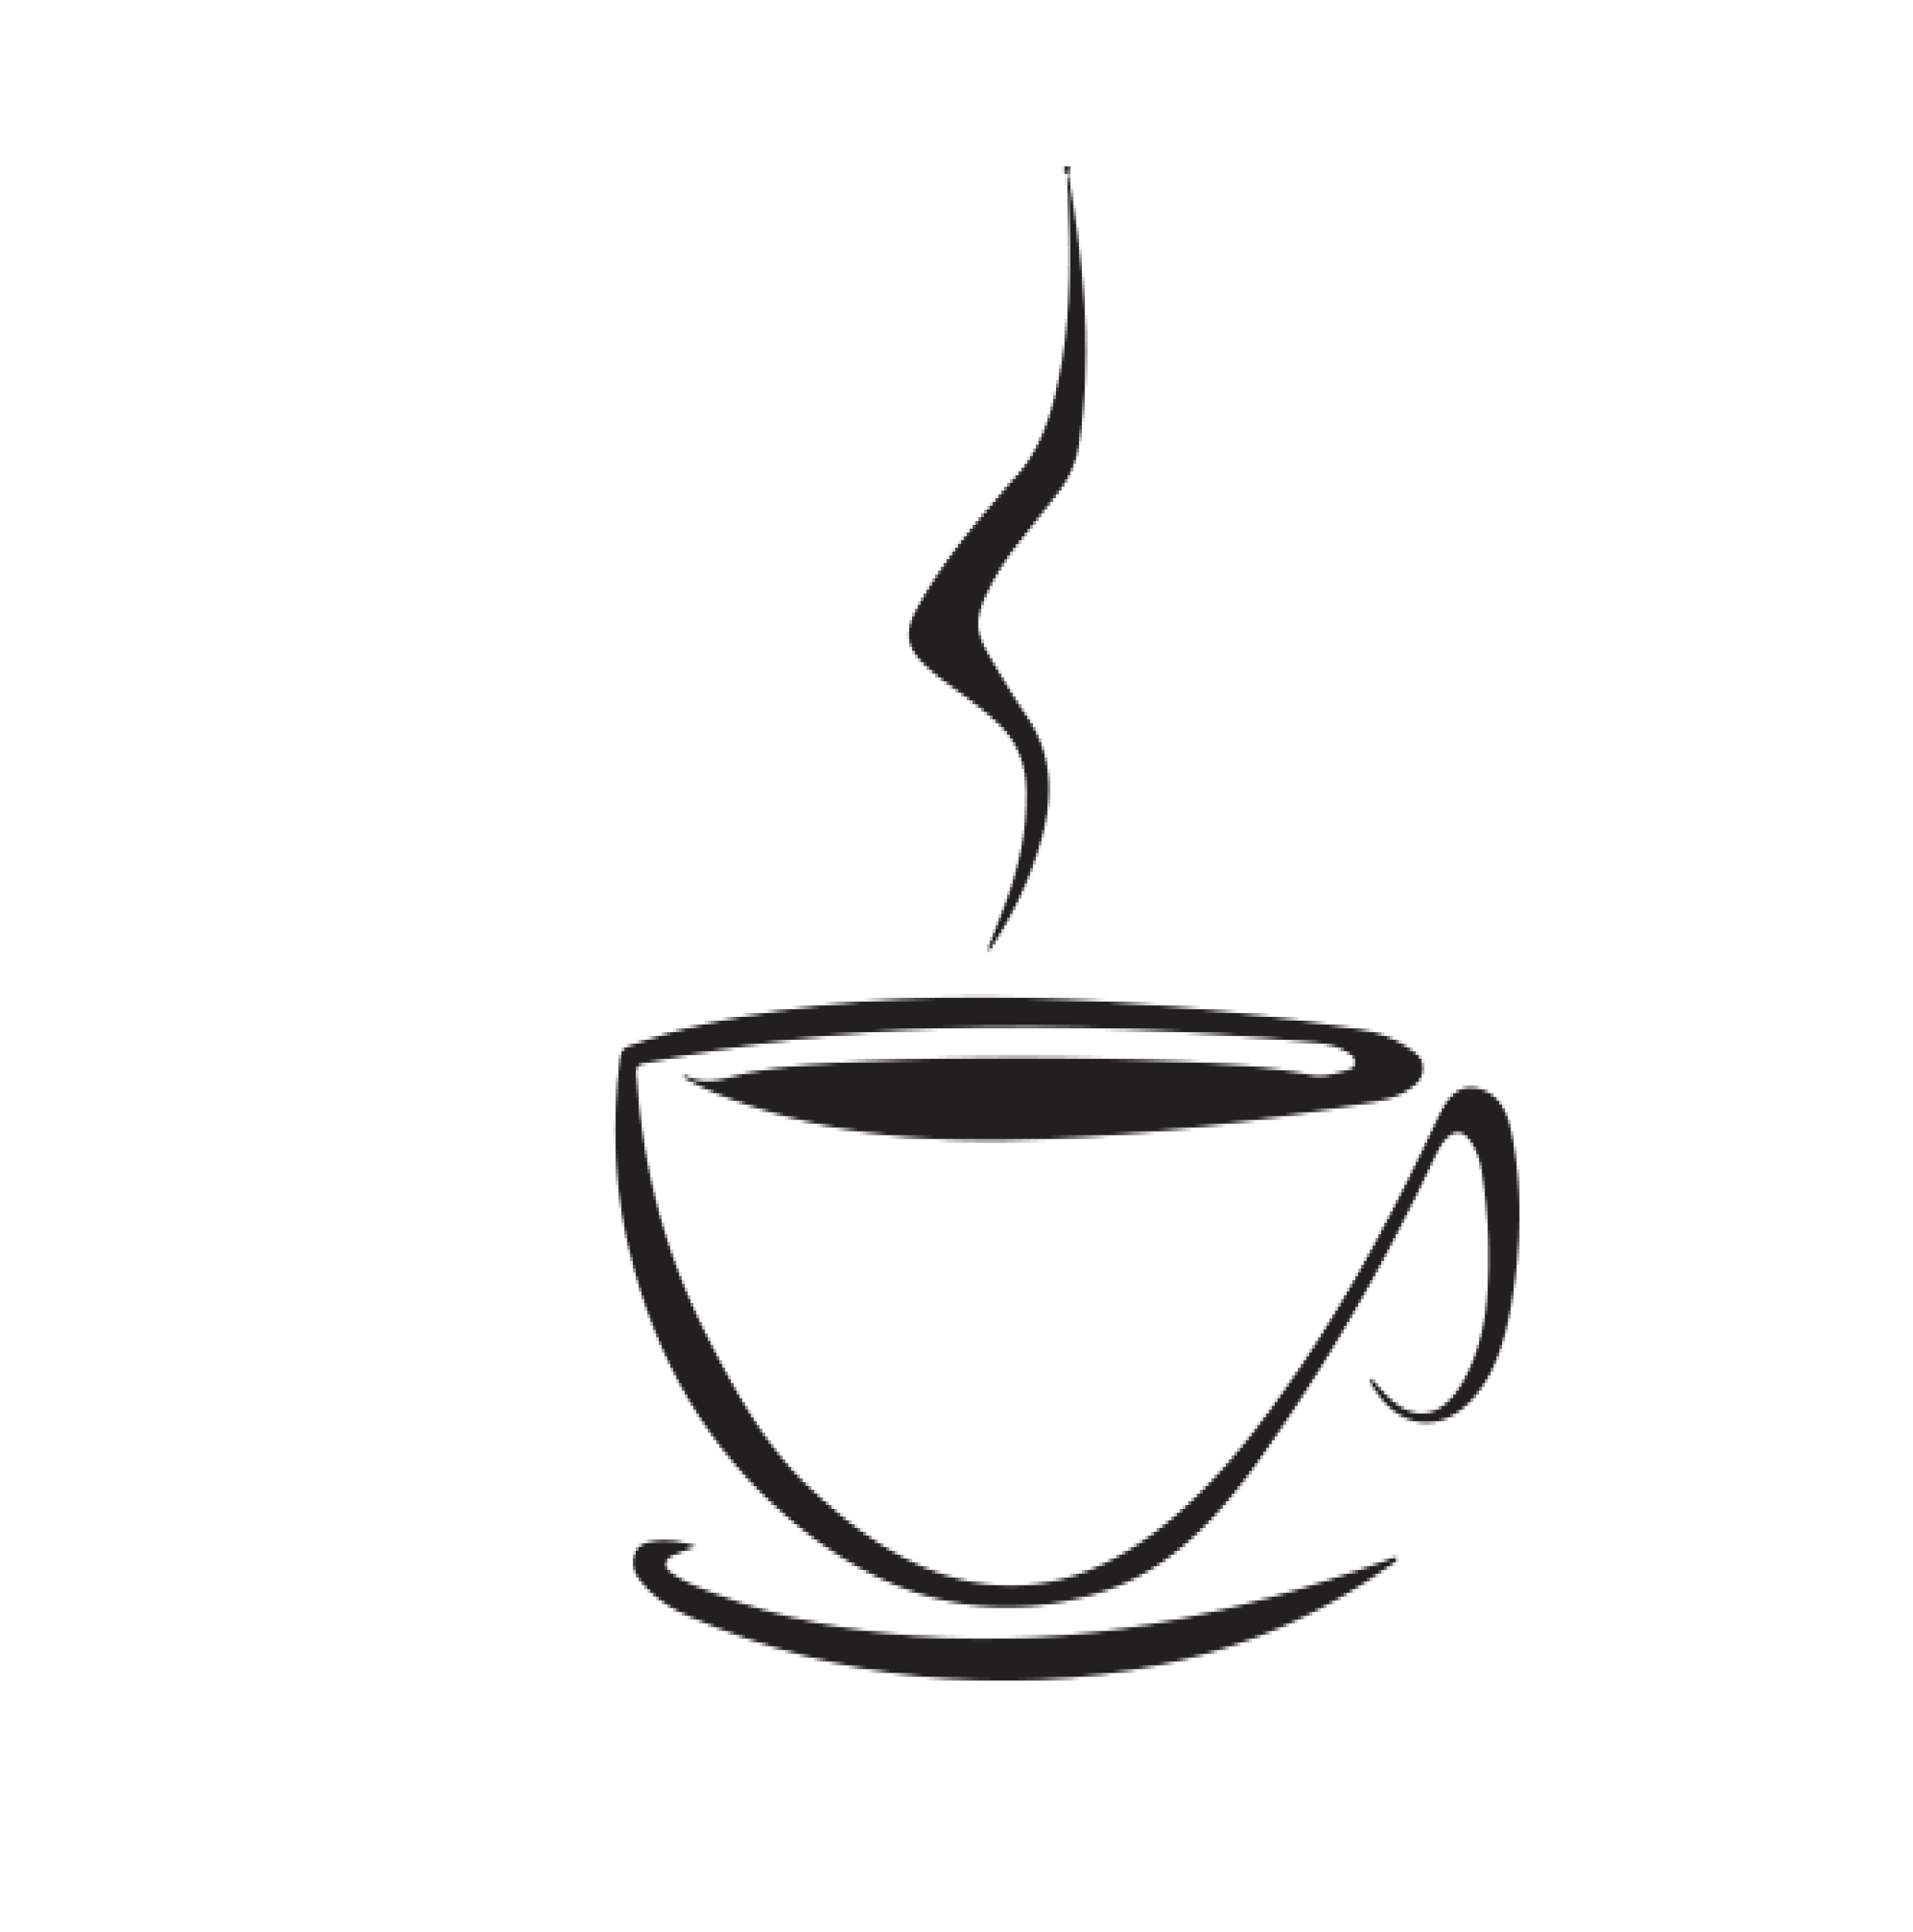 vector black and white download Latte clipart chai latte. Tea transparent free for.